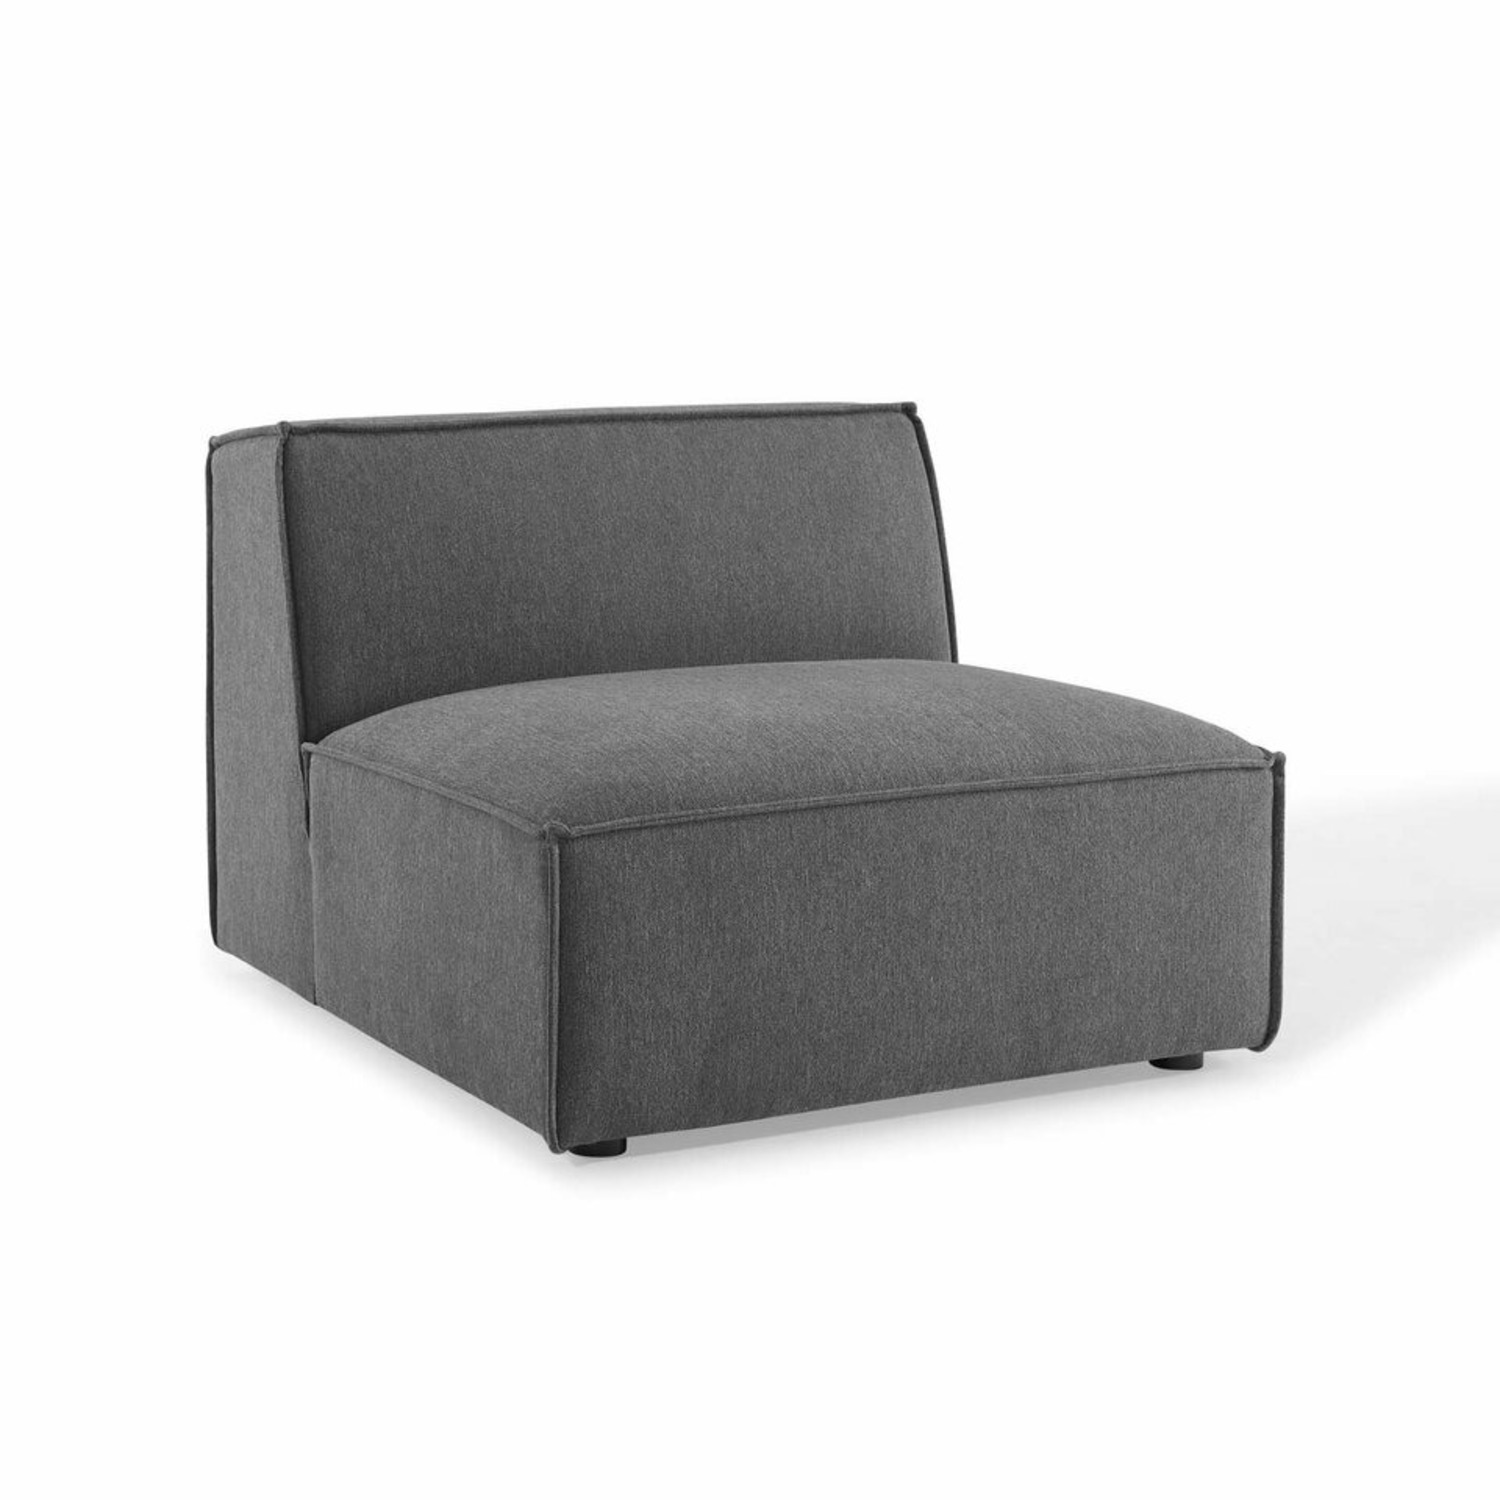 8-Piece Sectional Sofa In Charcoal Fabric Finish - image-7